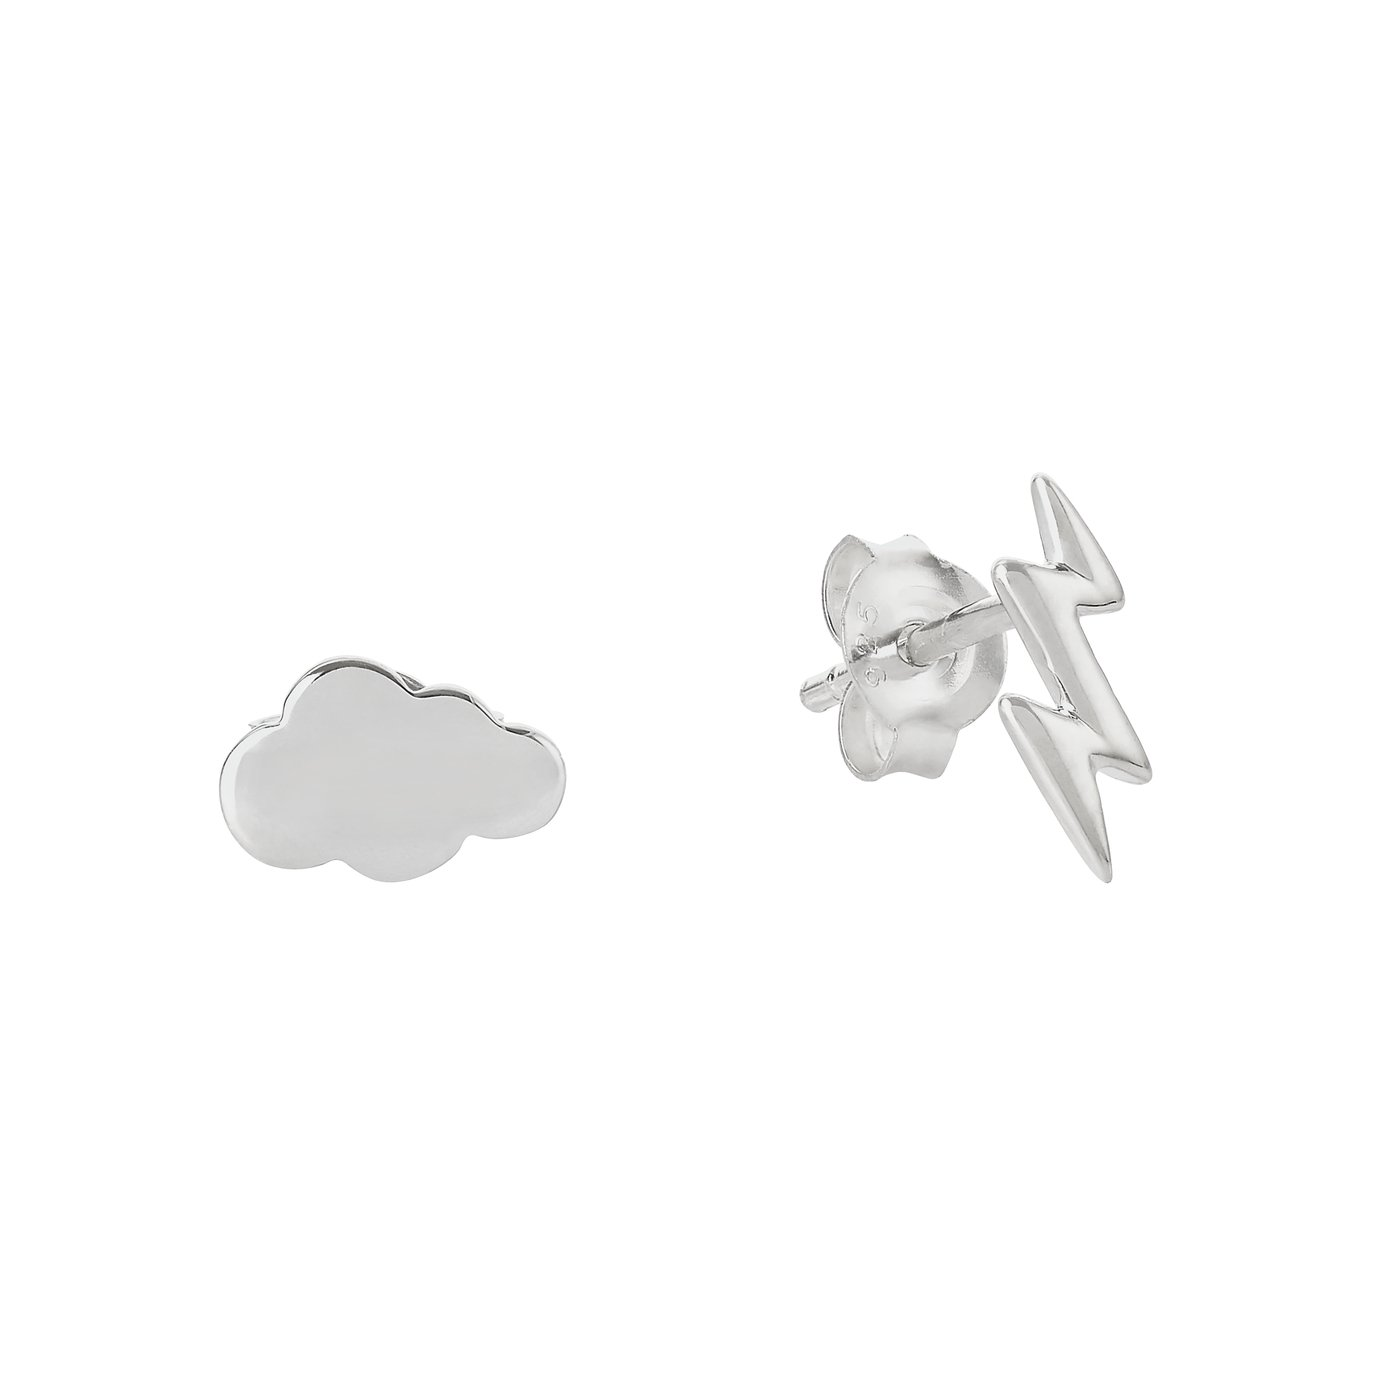 430320999 Revere Sterling Silver Cloud and Thunder Stud Earrings